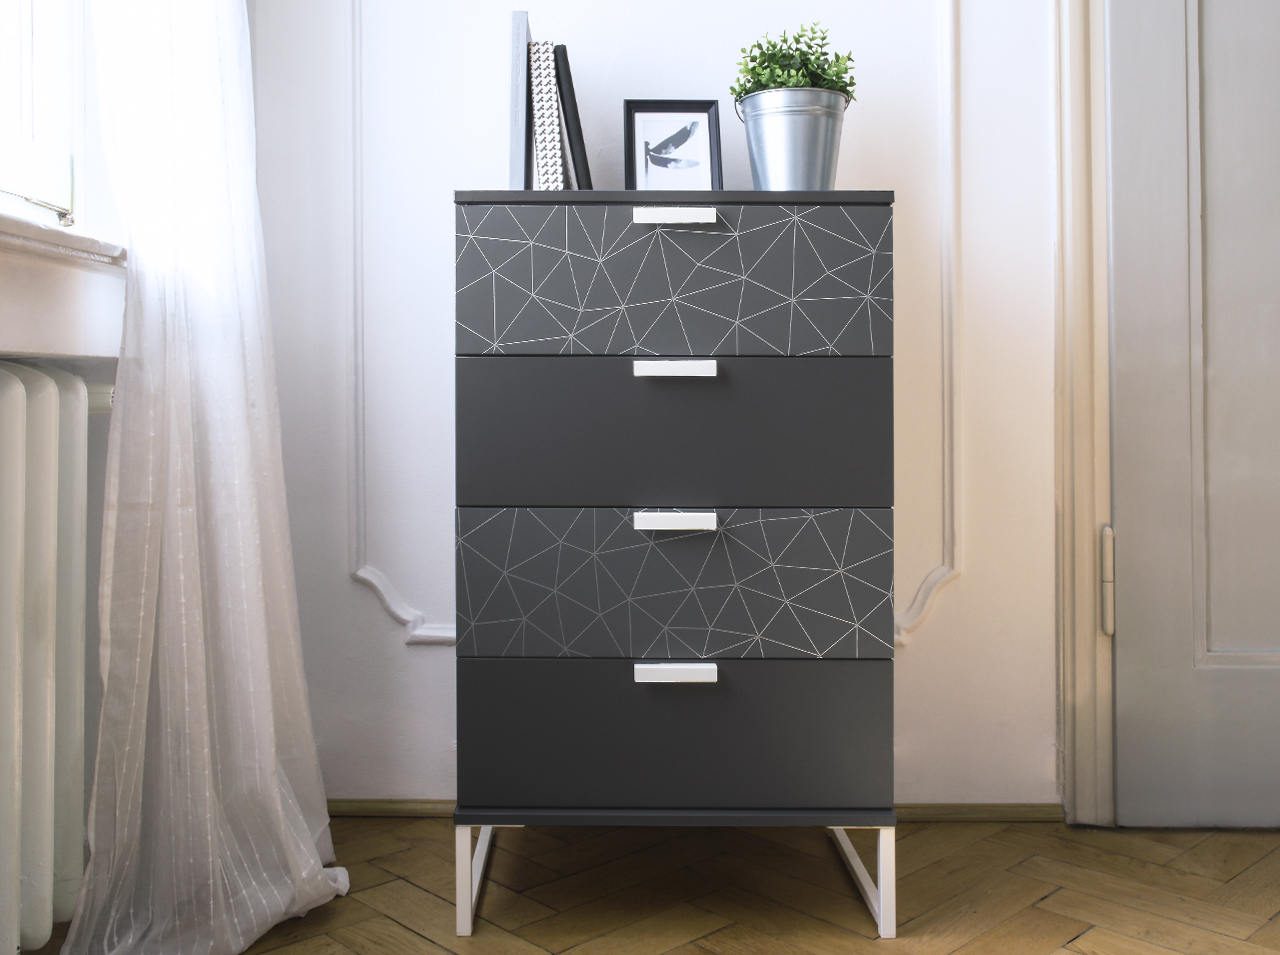 Chest of drawers restyled with d-c-fix® Tico Silver and Anthracite in shades of gray.